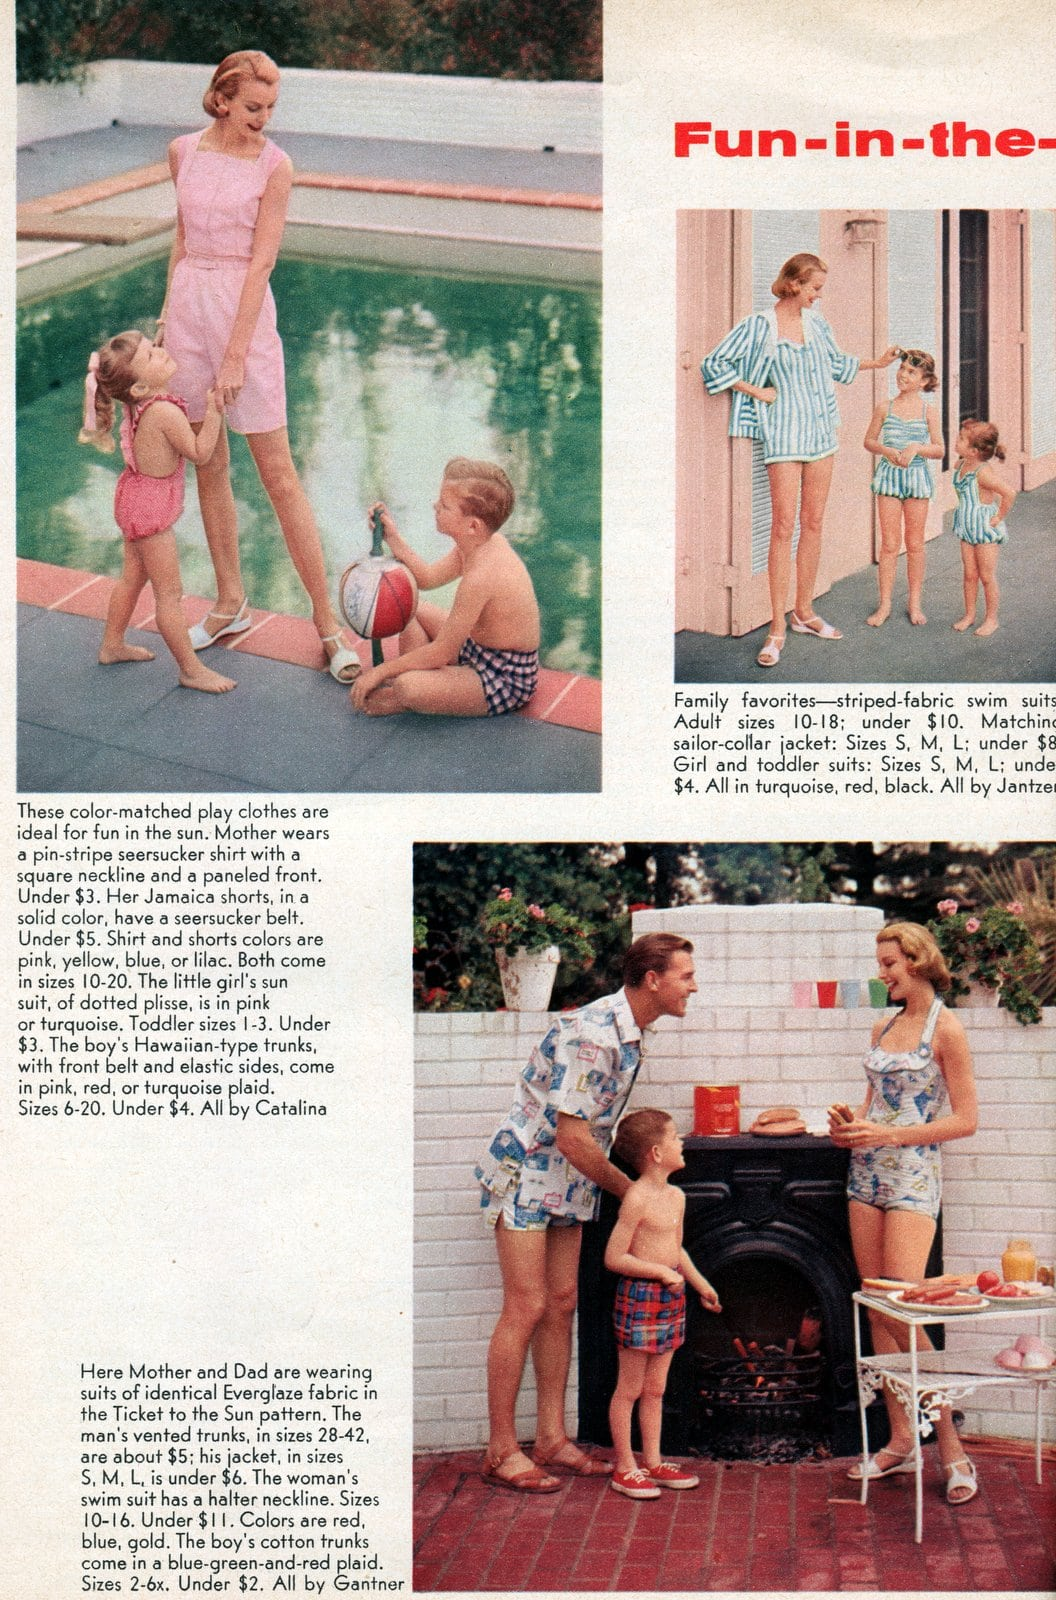 Vintage playwear - summer fashhions for women from the 1950s (1)